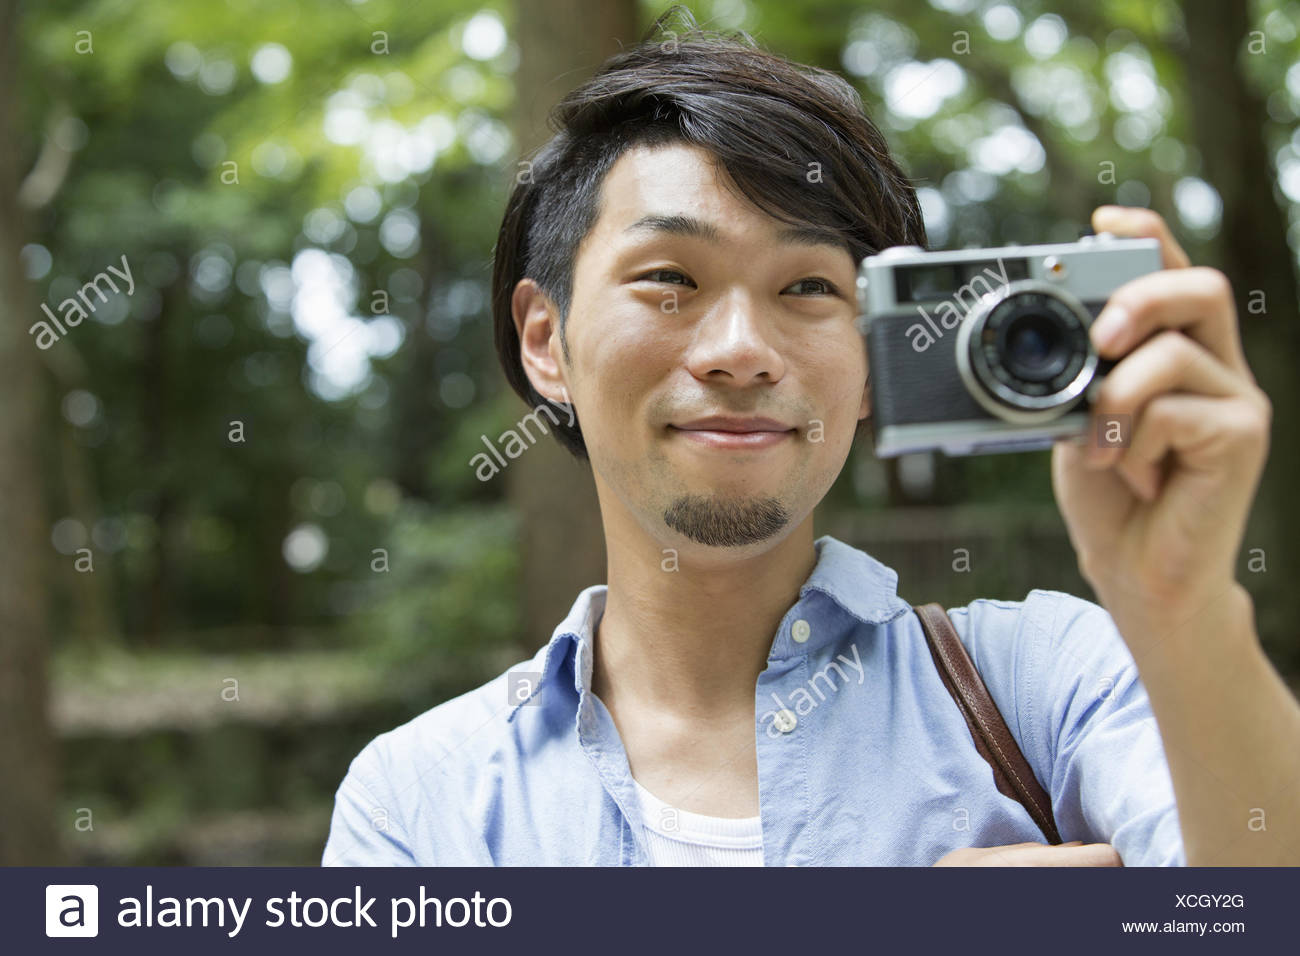 A man in a Kyoto park holding a camera, taking a picture. - Stock Image